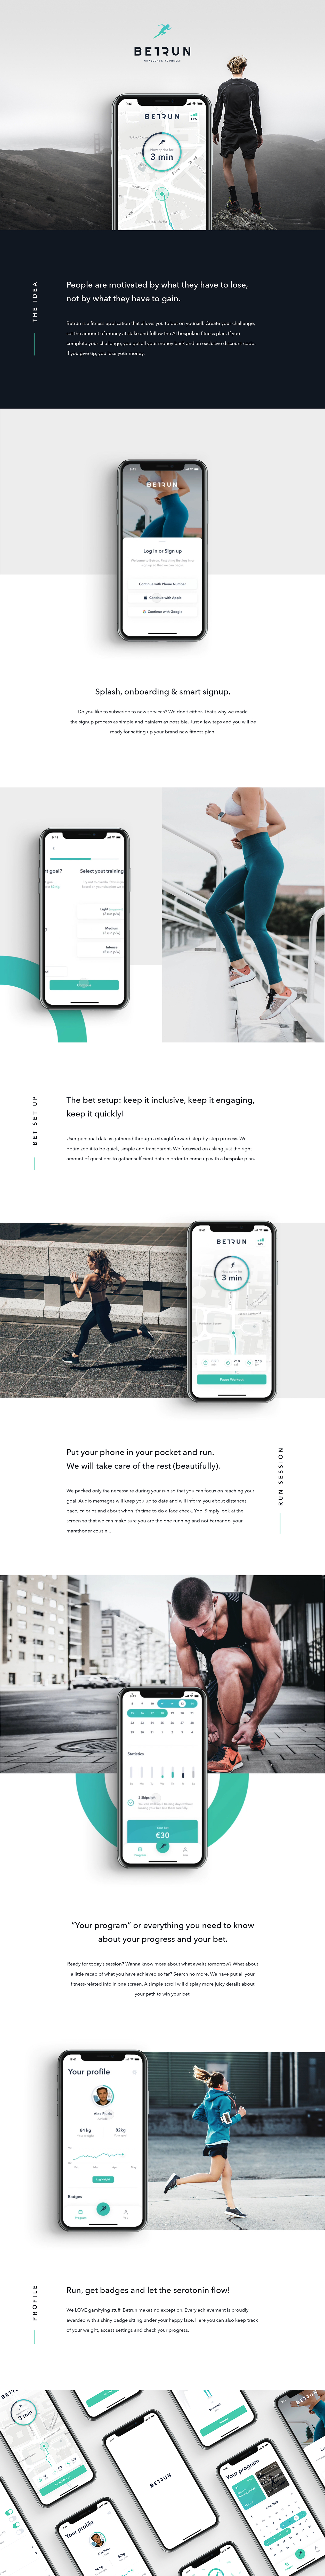 Betrun UI Kit for Sketch - Betrun is a fitness application that allows you to bet on yourself. Create your challenge, set the amount of money at stake and follow the AI bespoken fitness plan. If you complete your challenge, you get all your money back and an exclusive discount code. If you give up, you will lose your money.